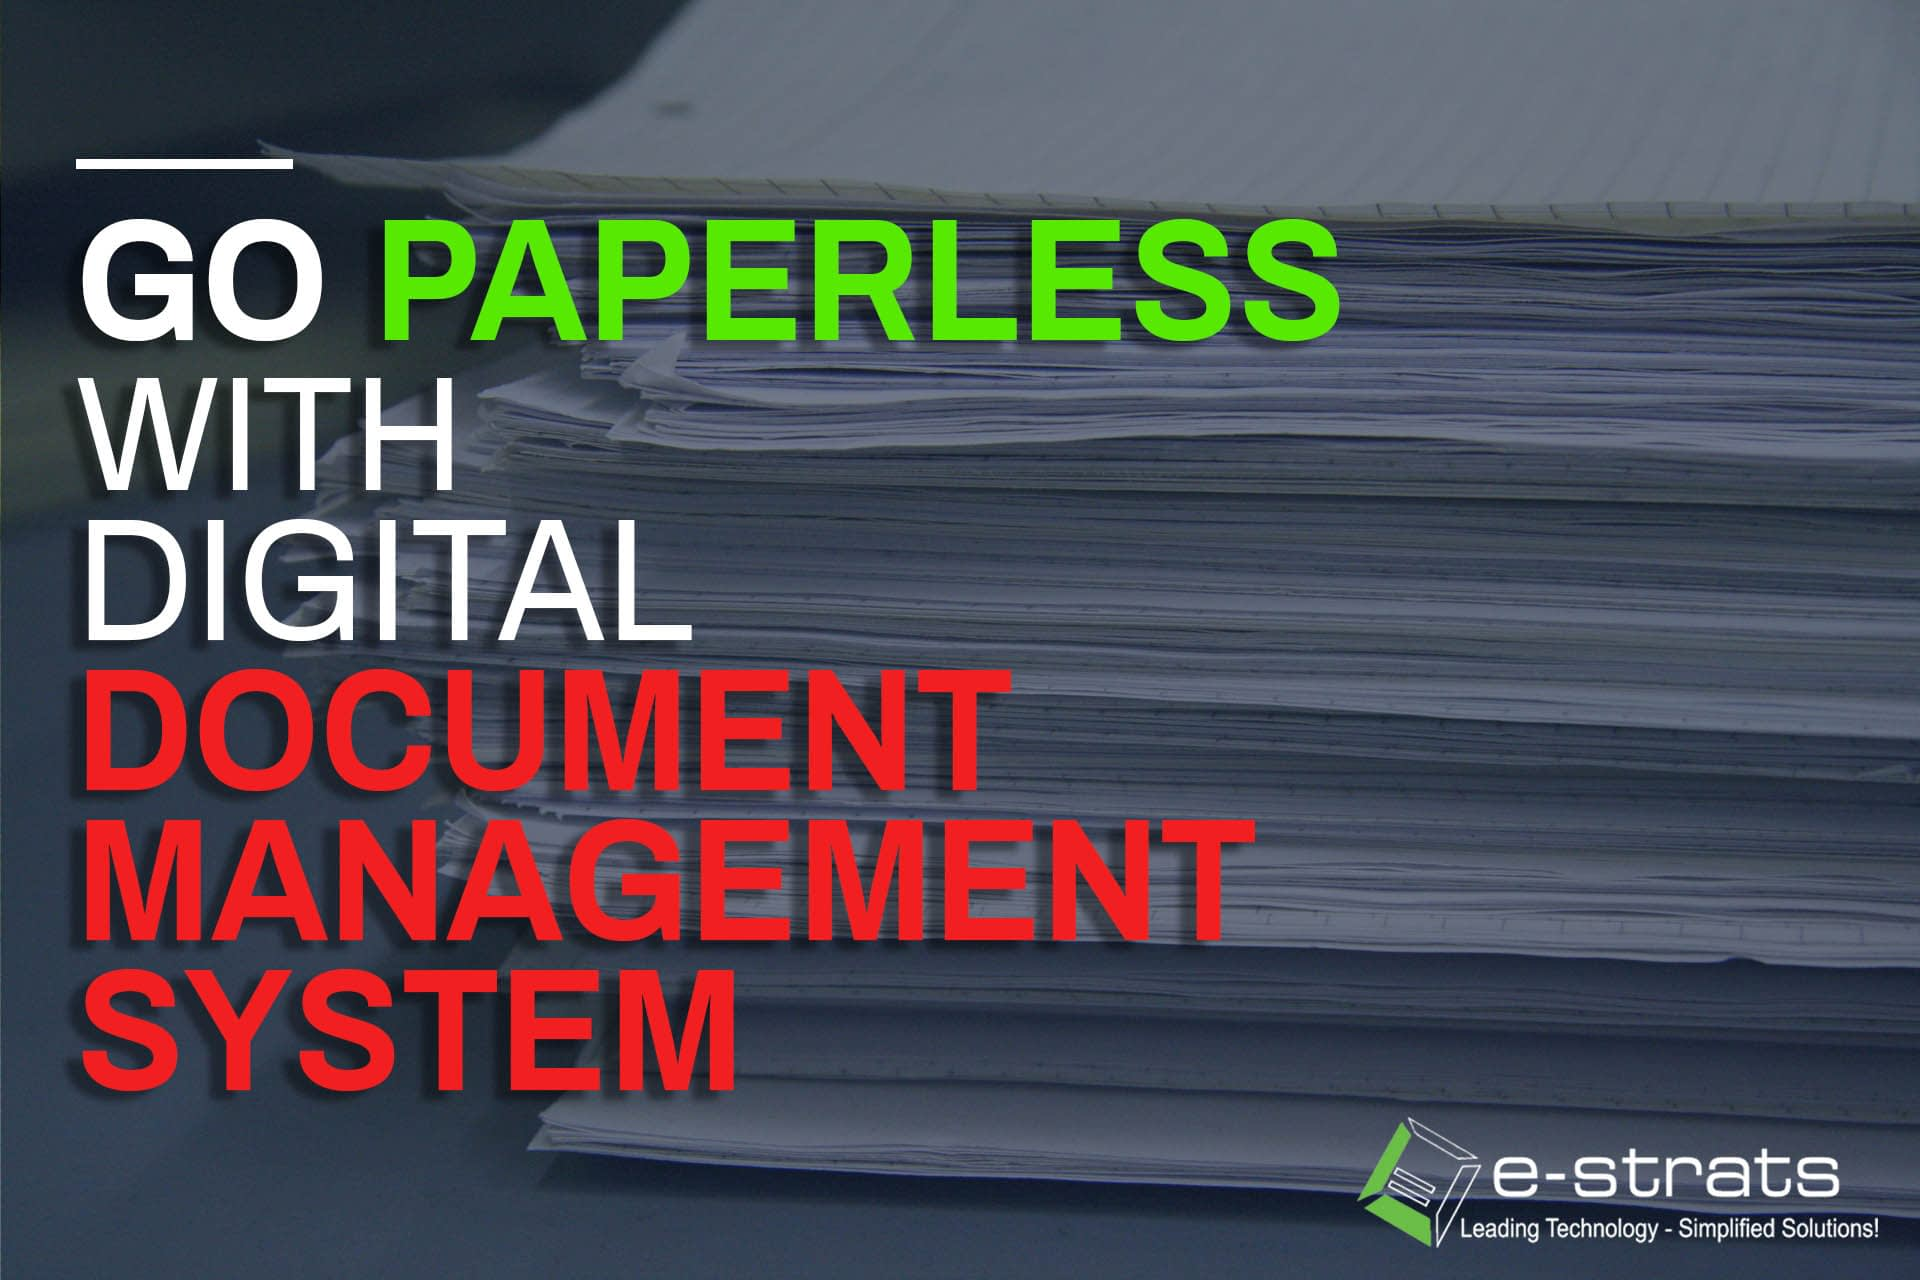 go paperless with digital document management system